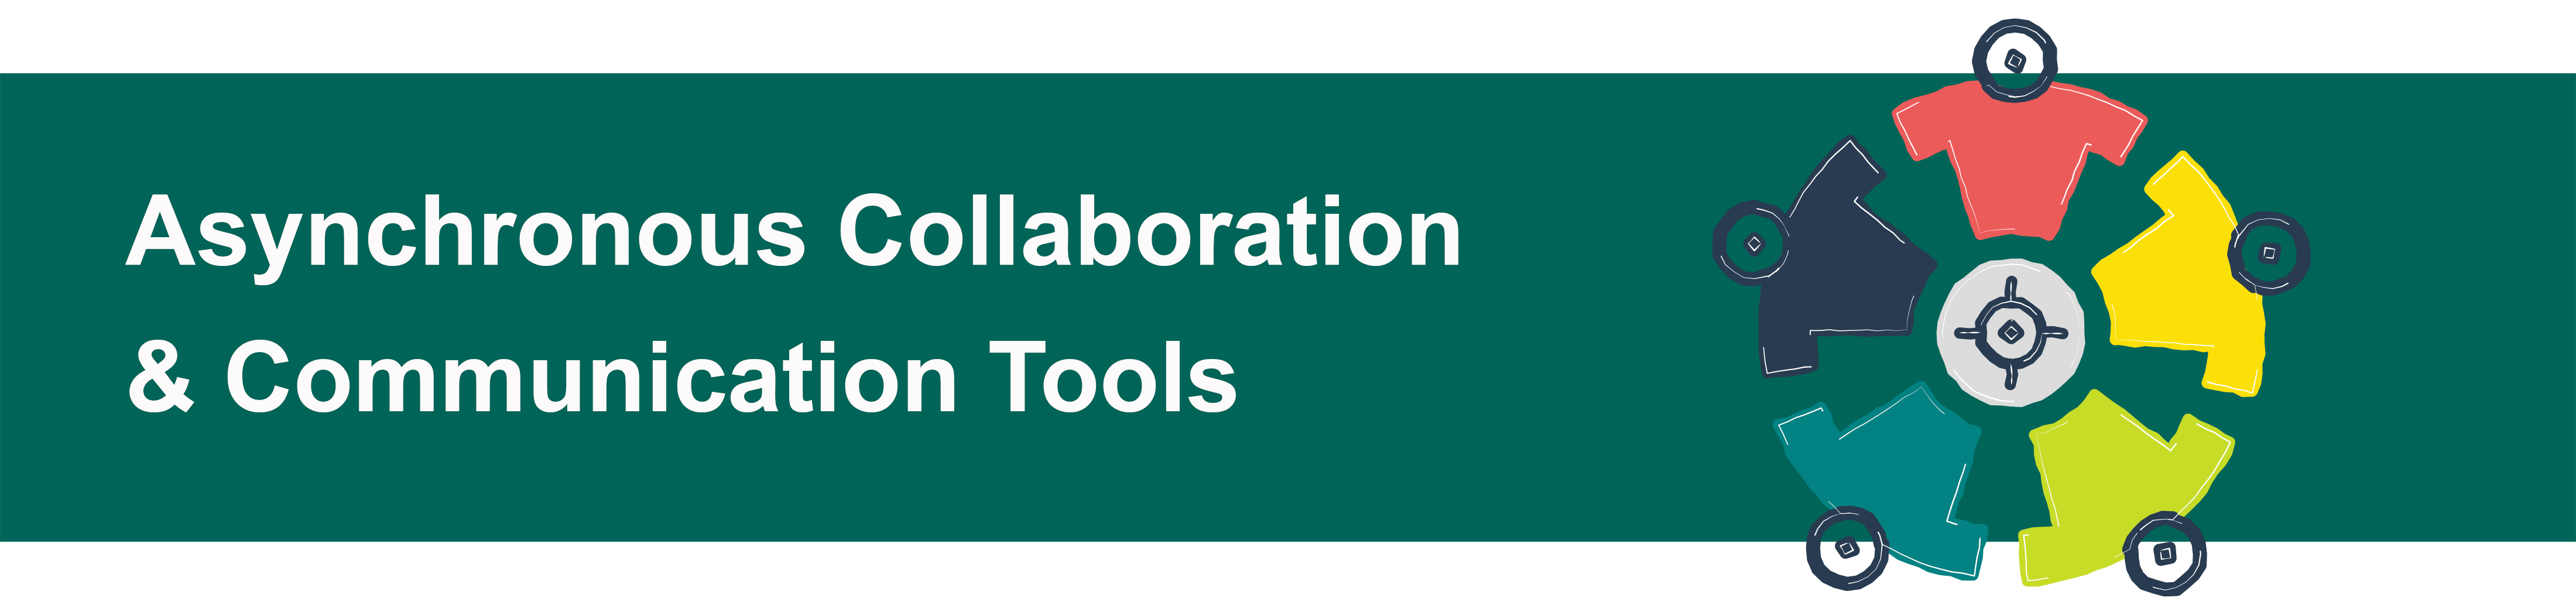 Asynchronous Collaboration Tools